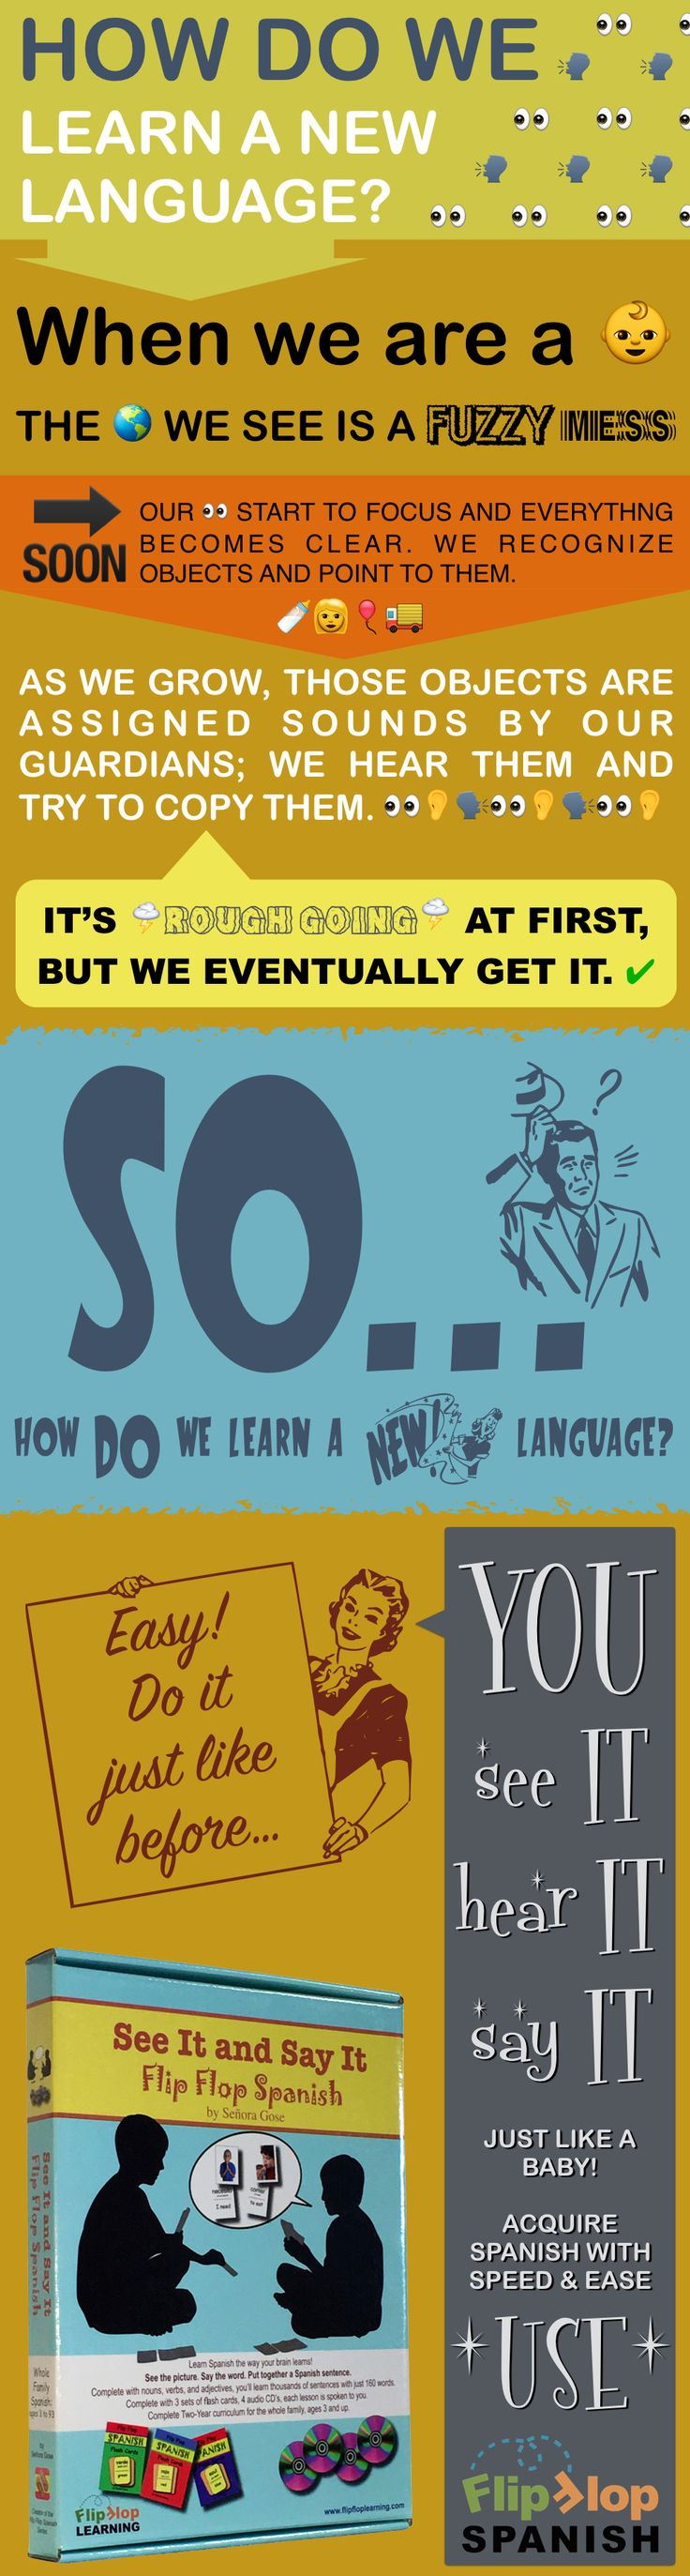 How do we learn a foreign language (or a language that's not our native language)?  This infographic breaks down language learning into the most basic steps we go through as babies when we learn to speak.  When you want to speak a new language like Spanish, you have to acquire it the same  way.  Flip Flop Spanish products are designed to teach you Spanish just like a baby learns, with pictures, audio and lots of speaking practice.  How do you learn a new language?  Easy, learn just like a…